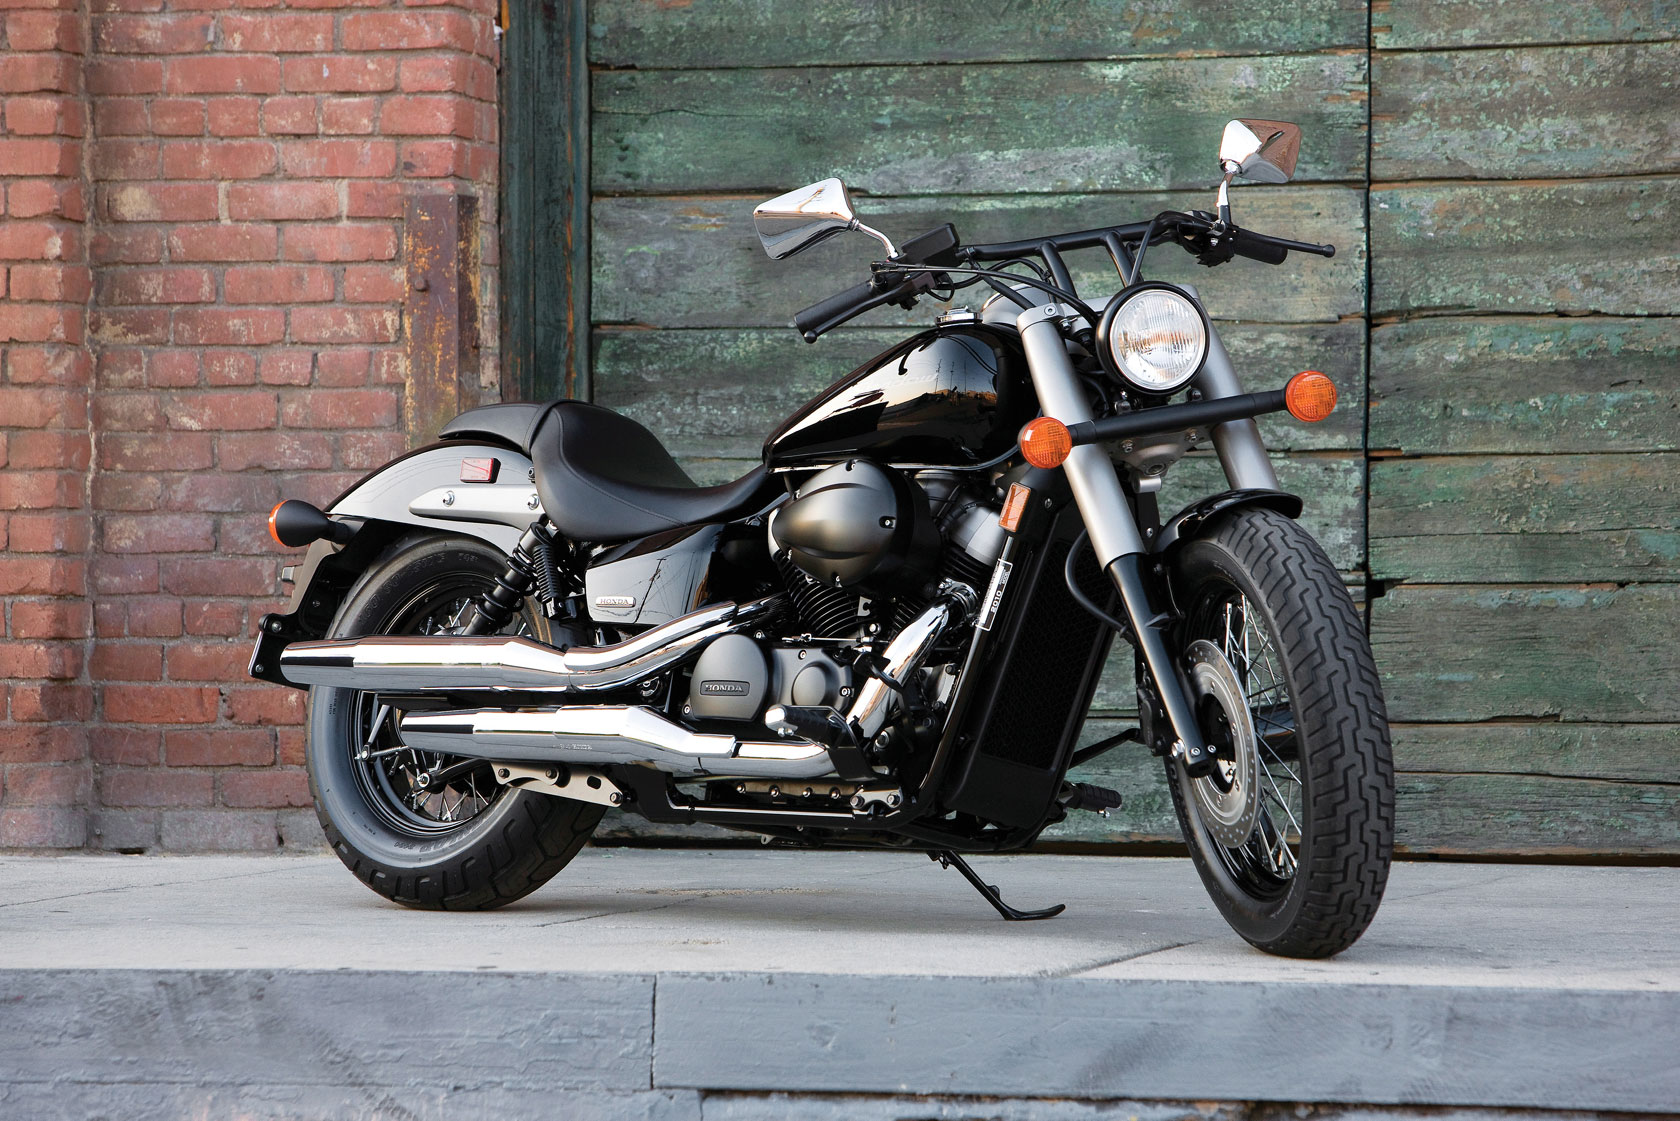 Honda 750 Shadow Phantom 2010 #2